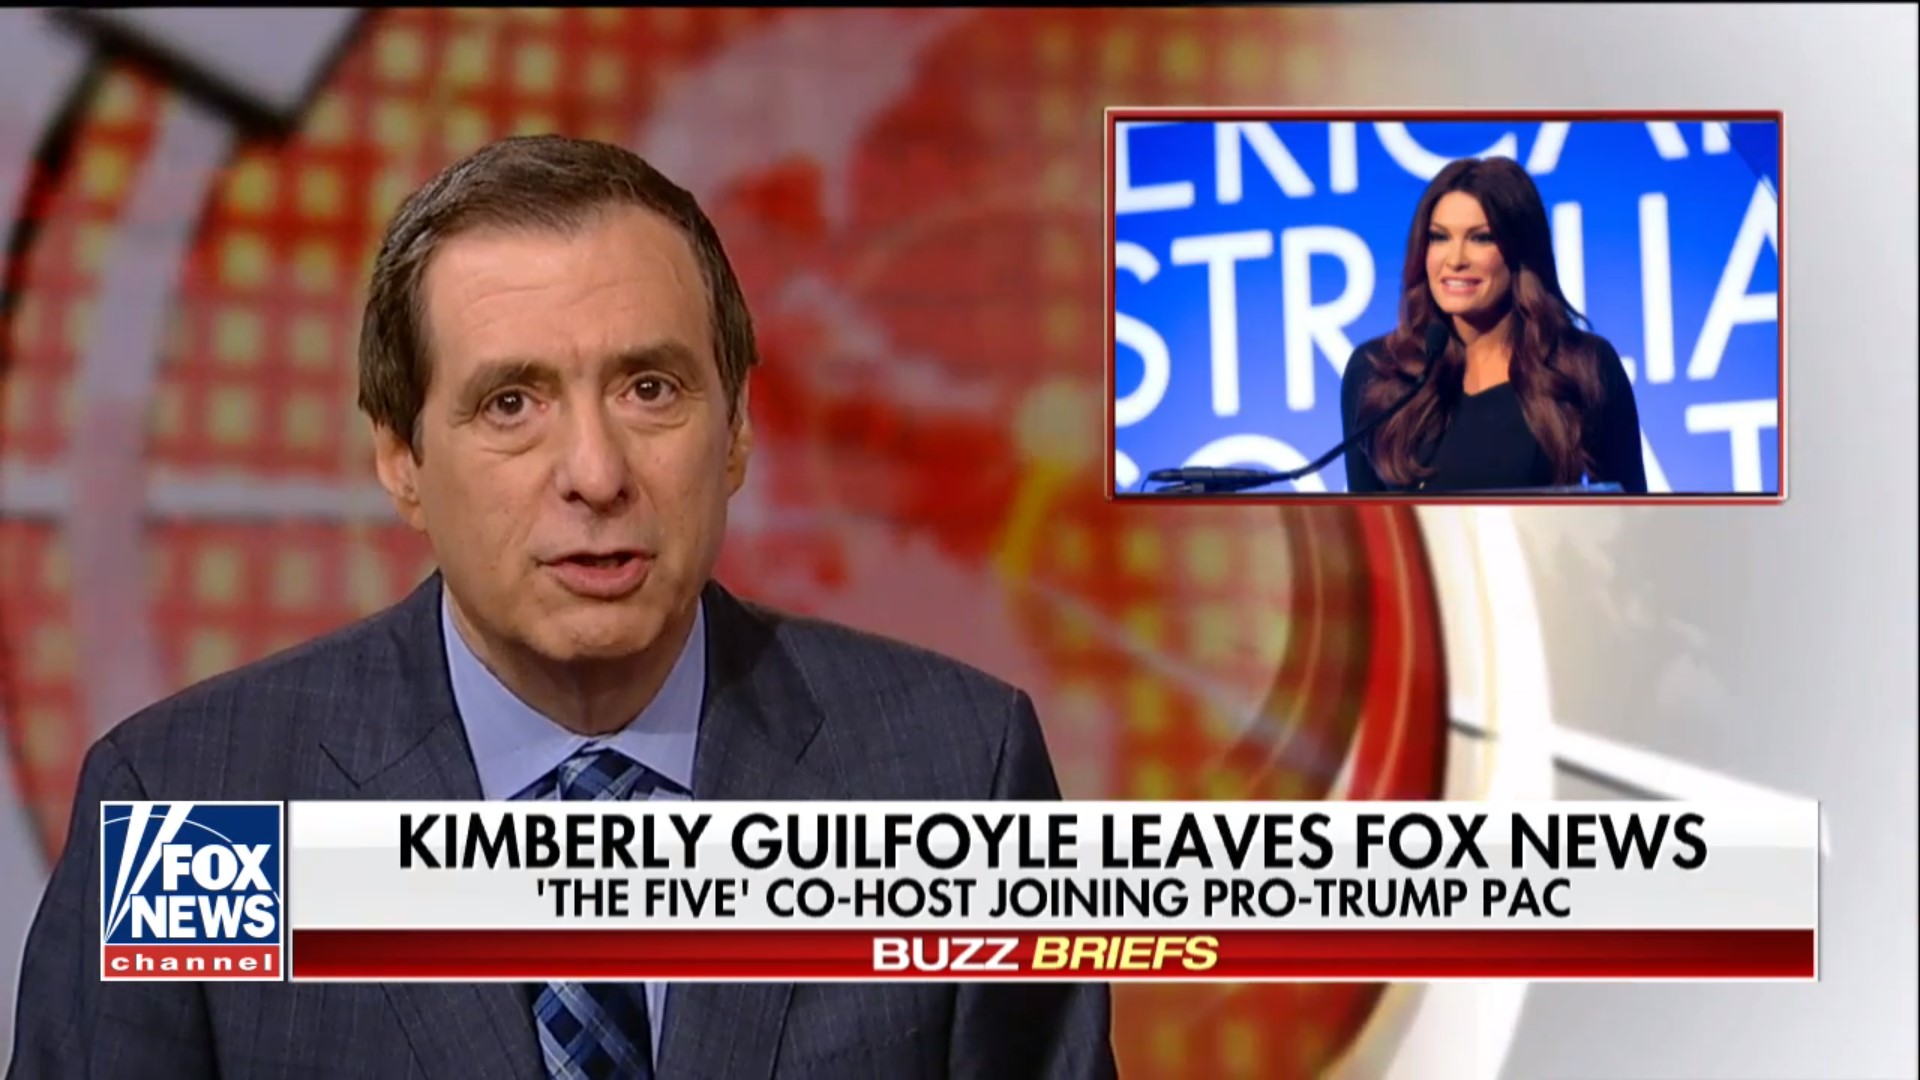 Howard Kurtz Addresses Guilfoyle's Fox News Departure: There Were 'Tensions' Behind The Scenes